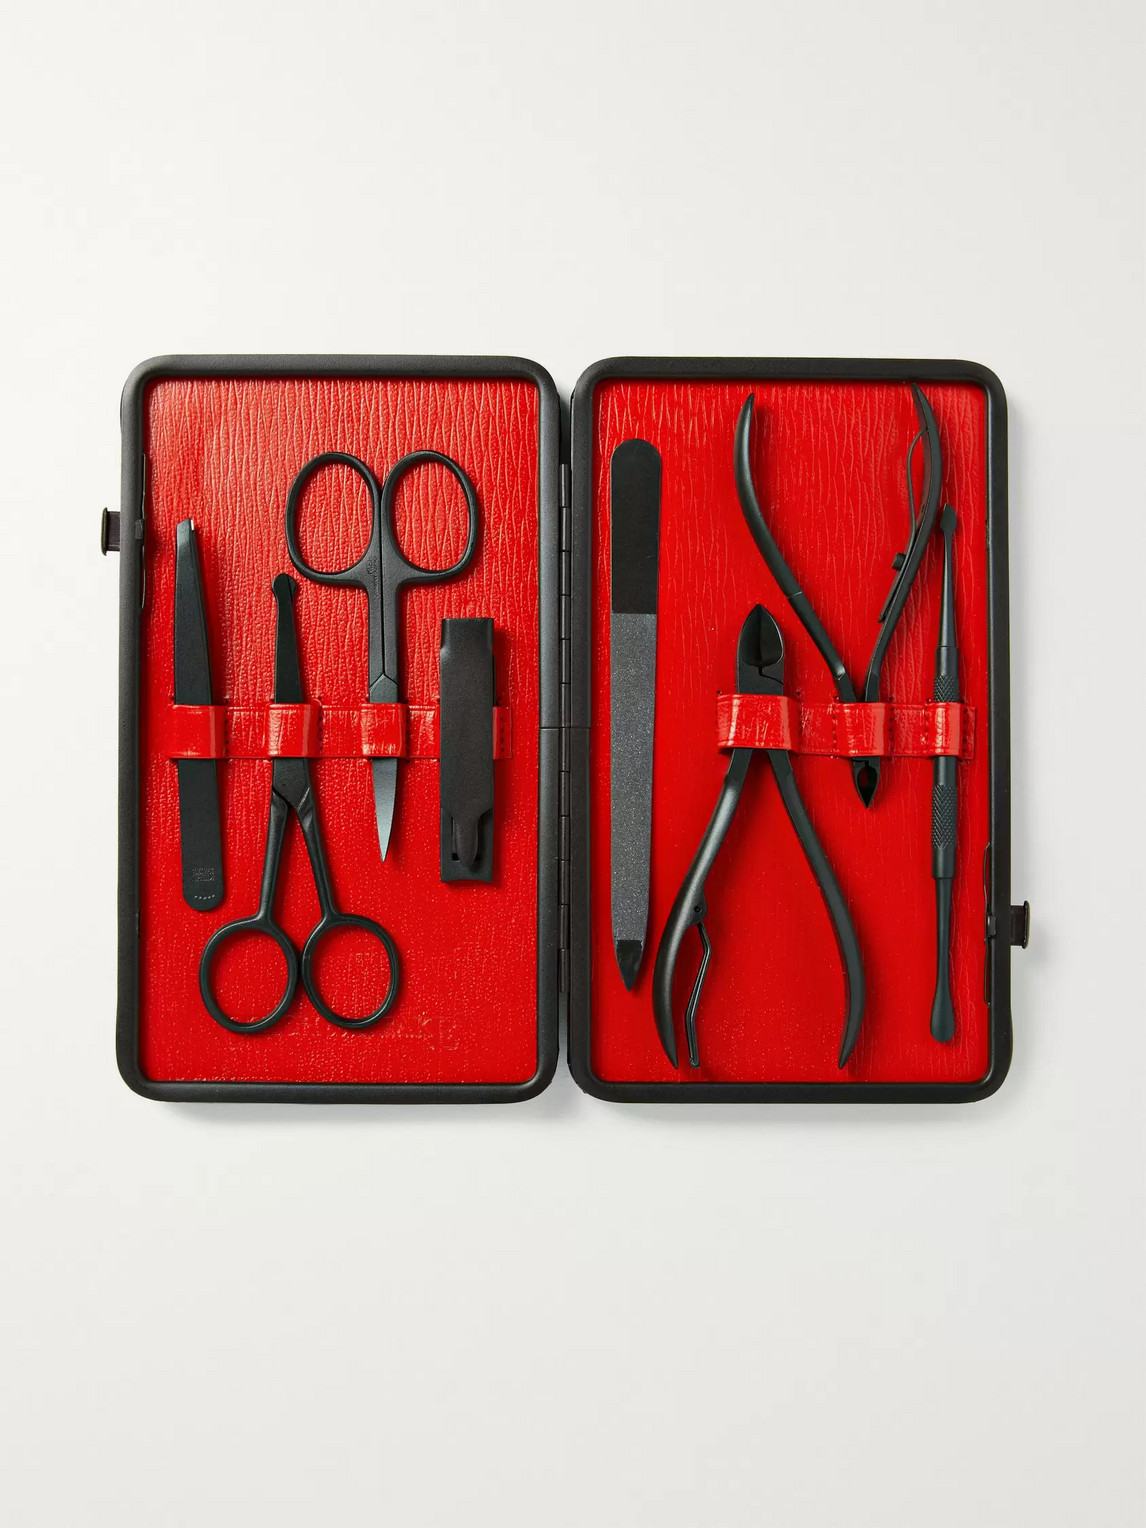 Czech & Speake Leather-bound Manicure Set In Red